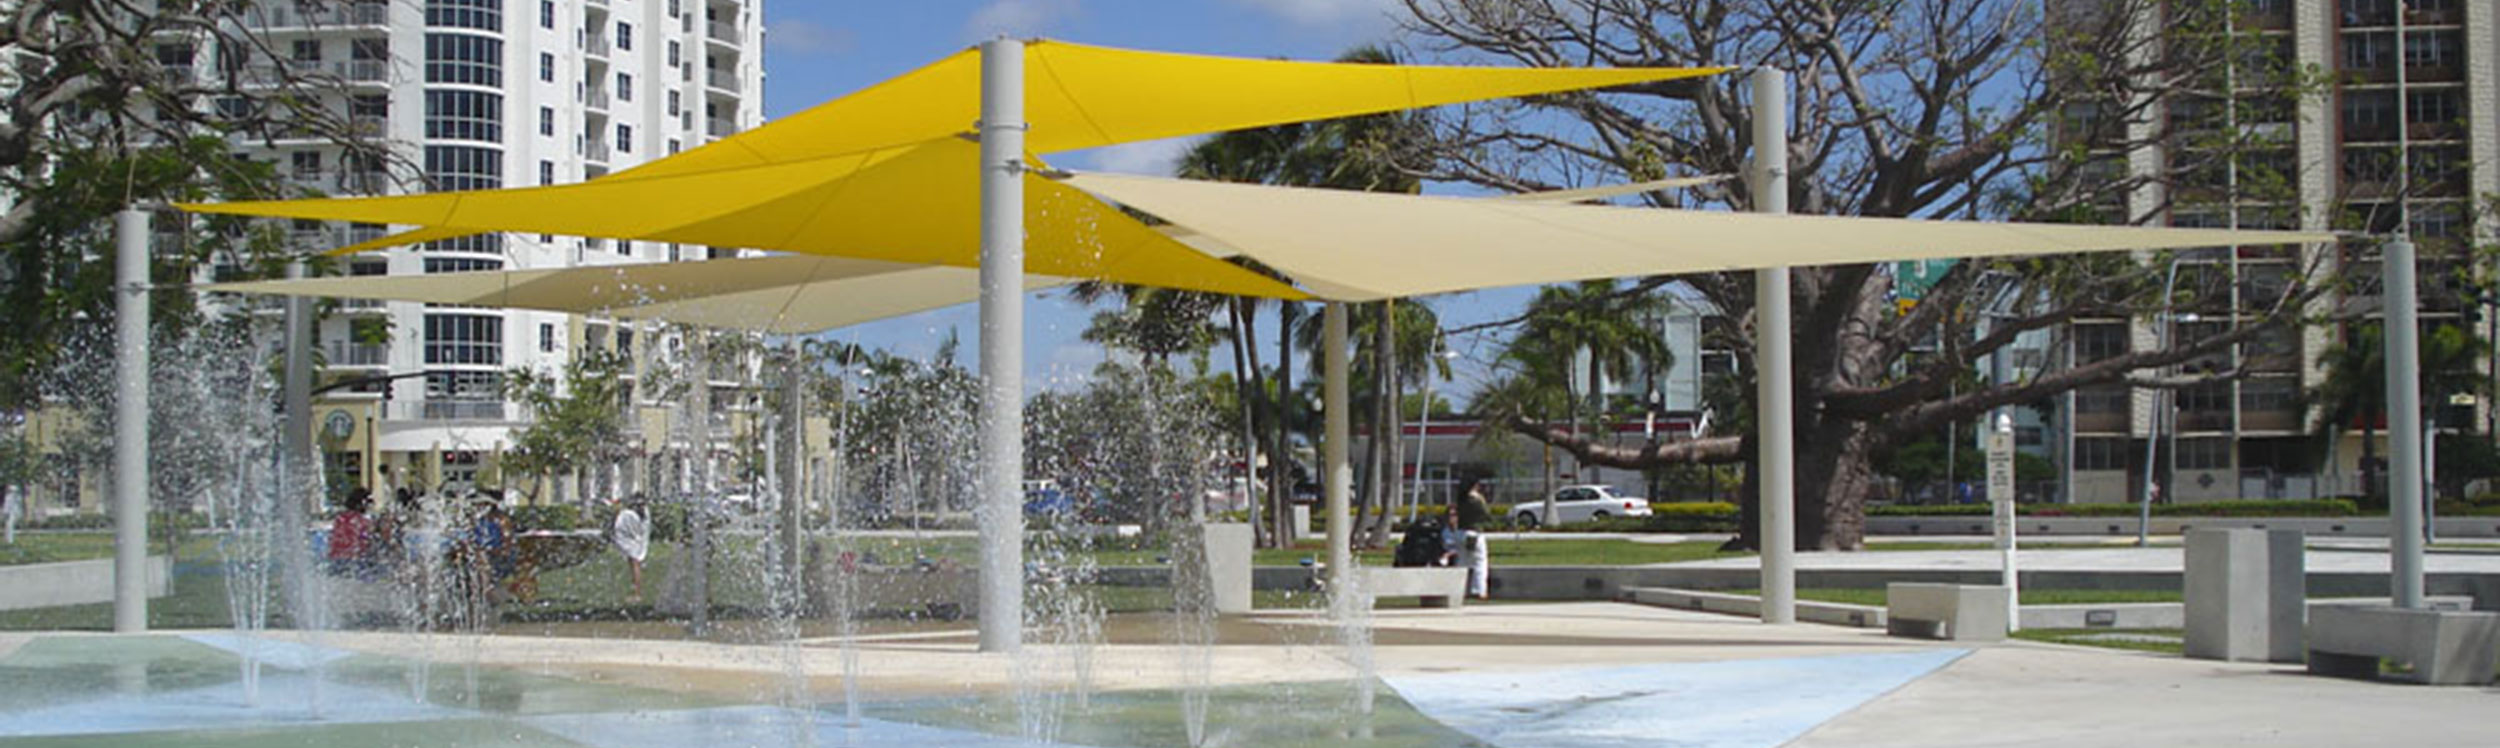 Shade structures for splash parks with sail features